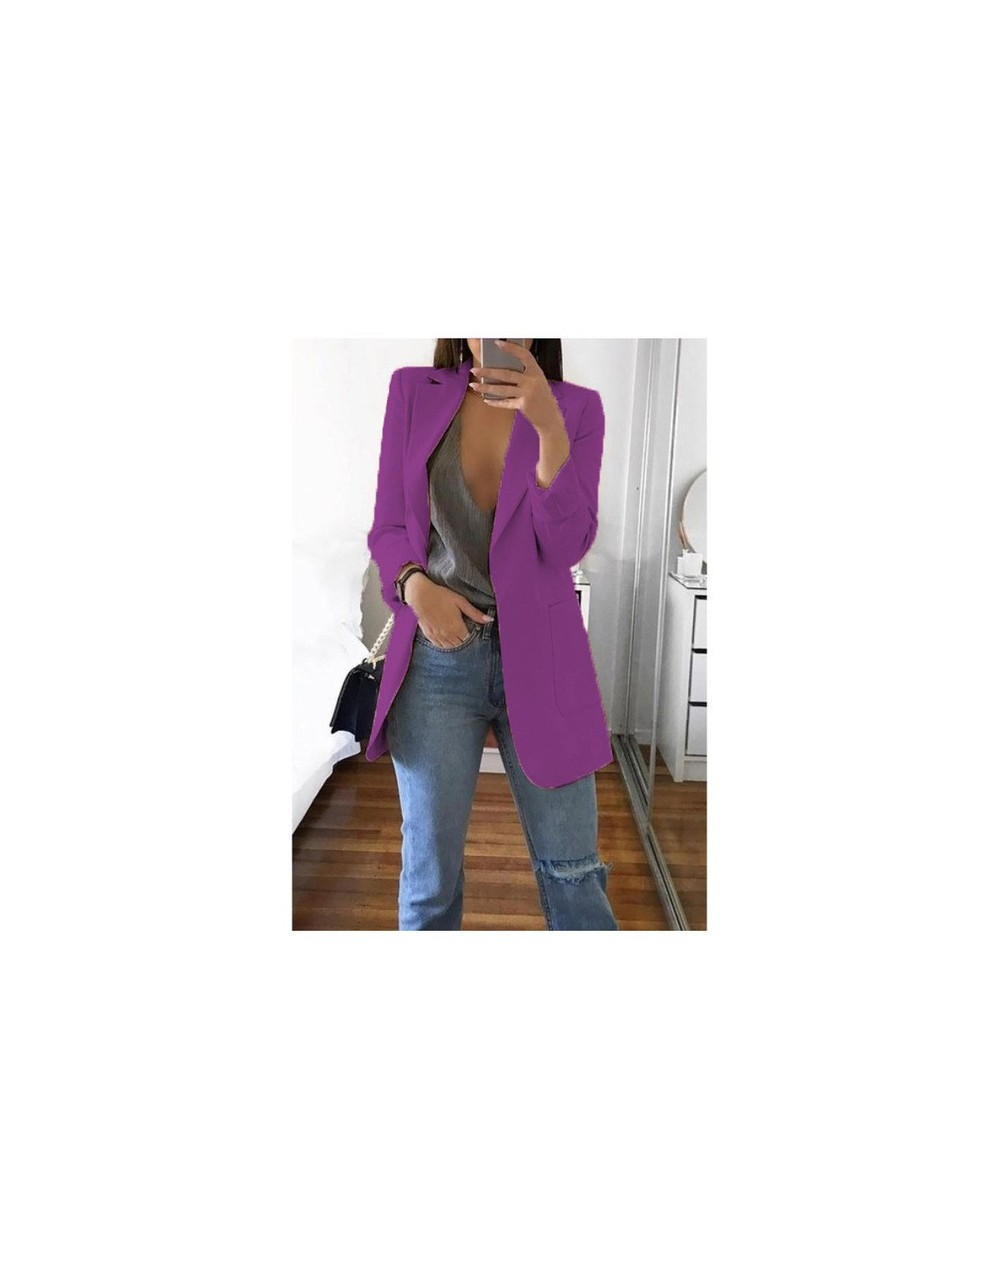 New Women Suit Solid Casual Notched Collar Female Office Suit Autumn 2019 High Quality Coat Tops - Purple - 5711118645267...